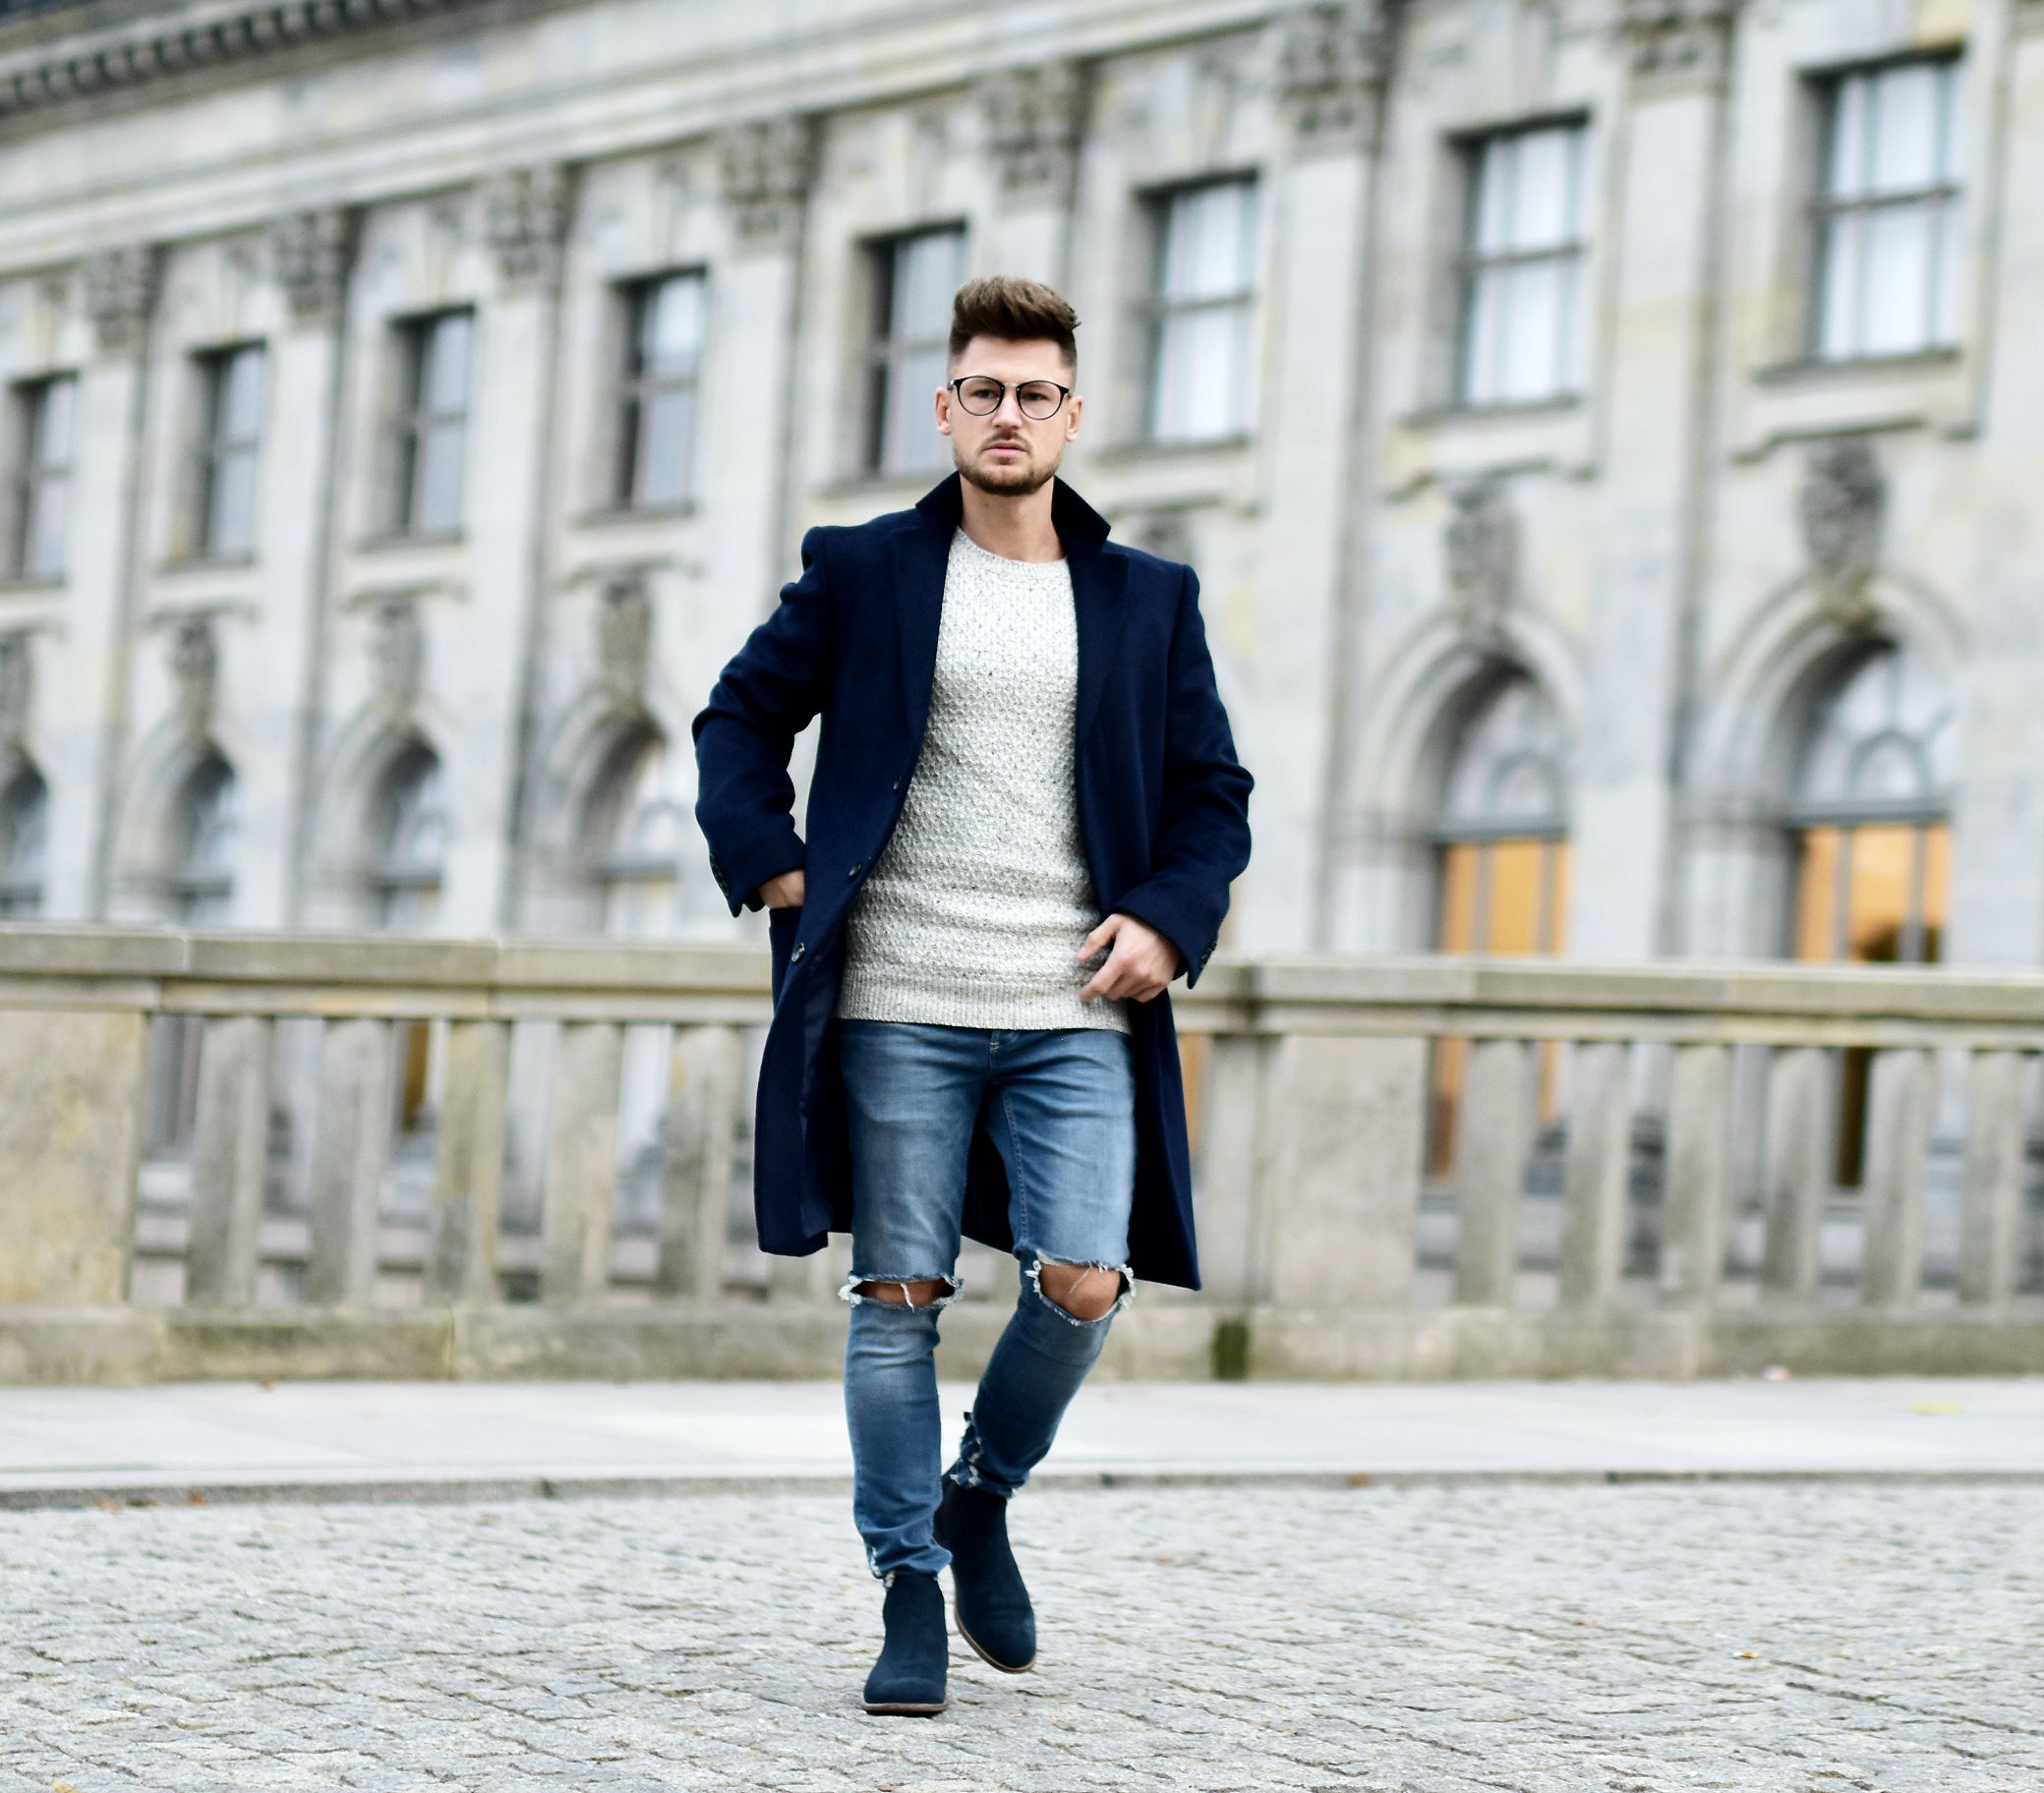 tommeezjerry-styleblog-maennerblog-maenner-modeblog-berlin-berlinblog-maennermodeblog-outfit-mantel-marks-and-spencer-coat-chelsea-boots-autumn-look-3